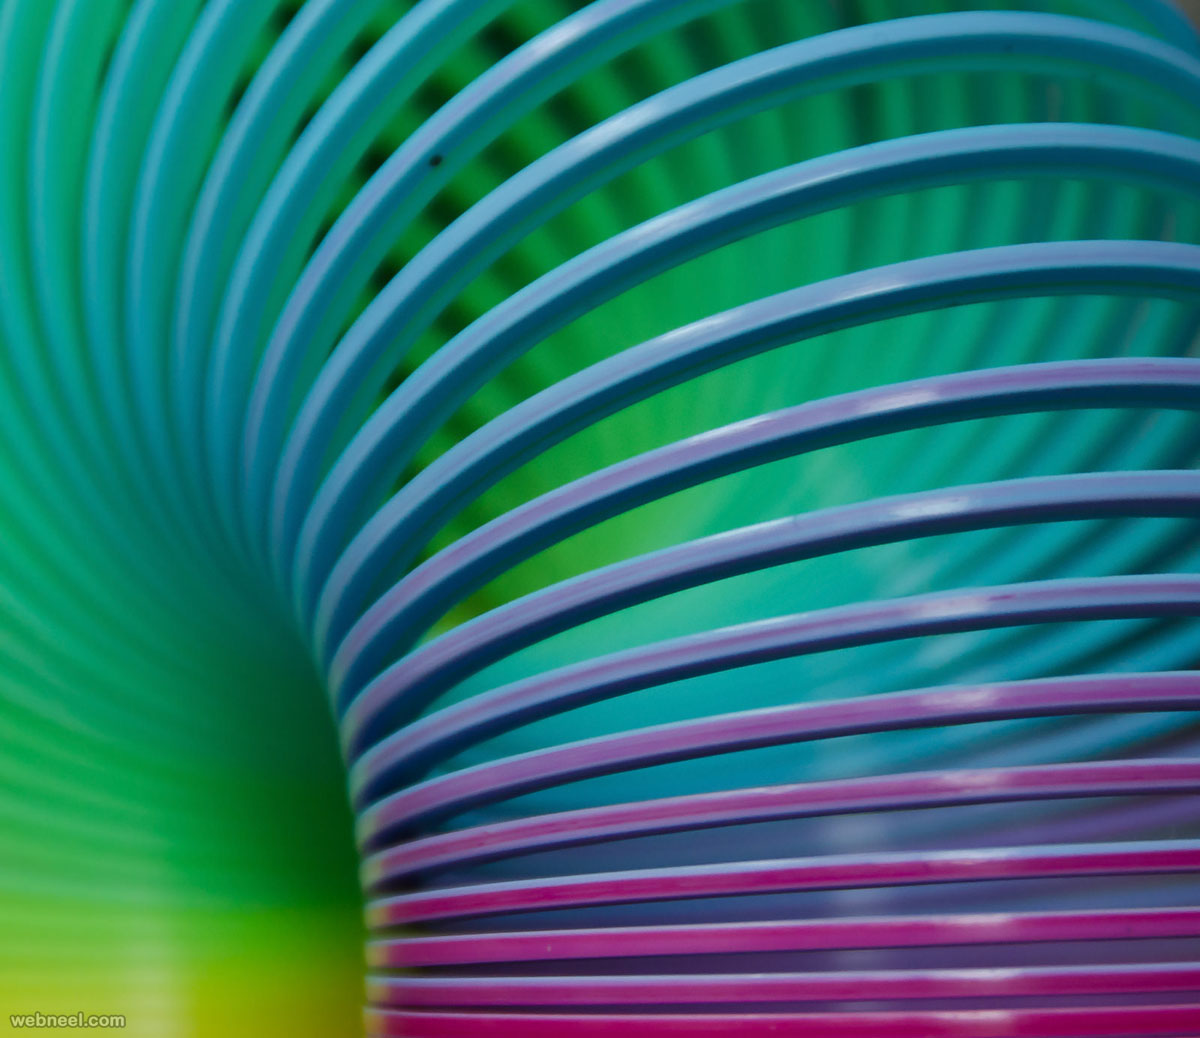 abstract photography by danward